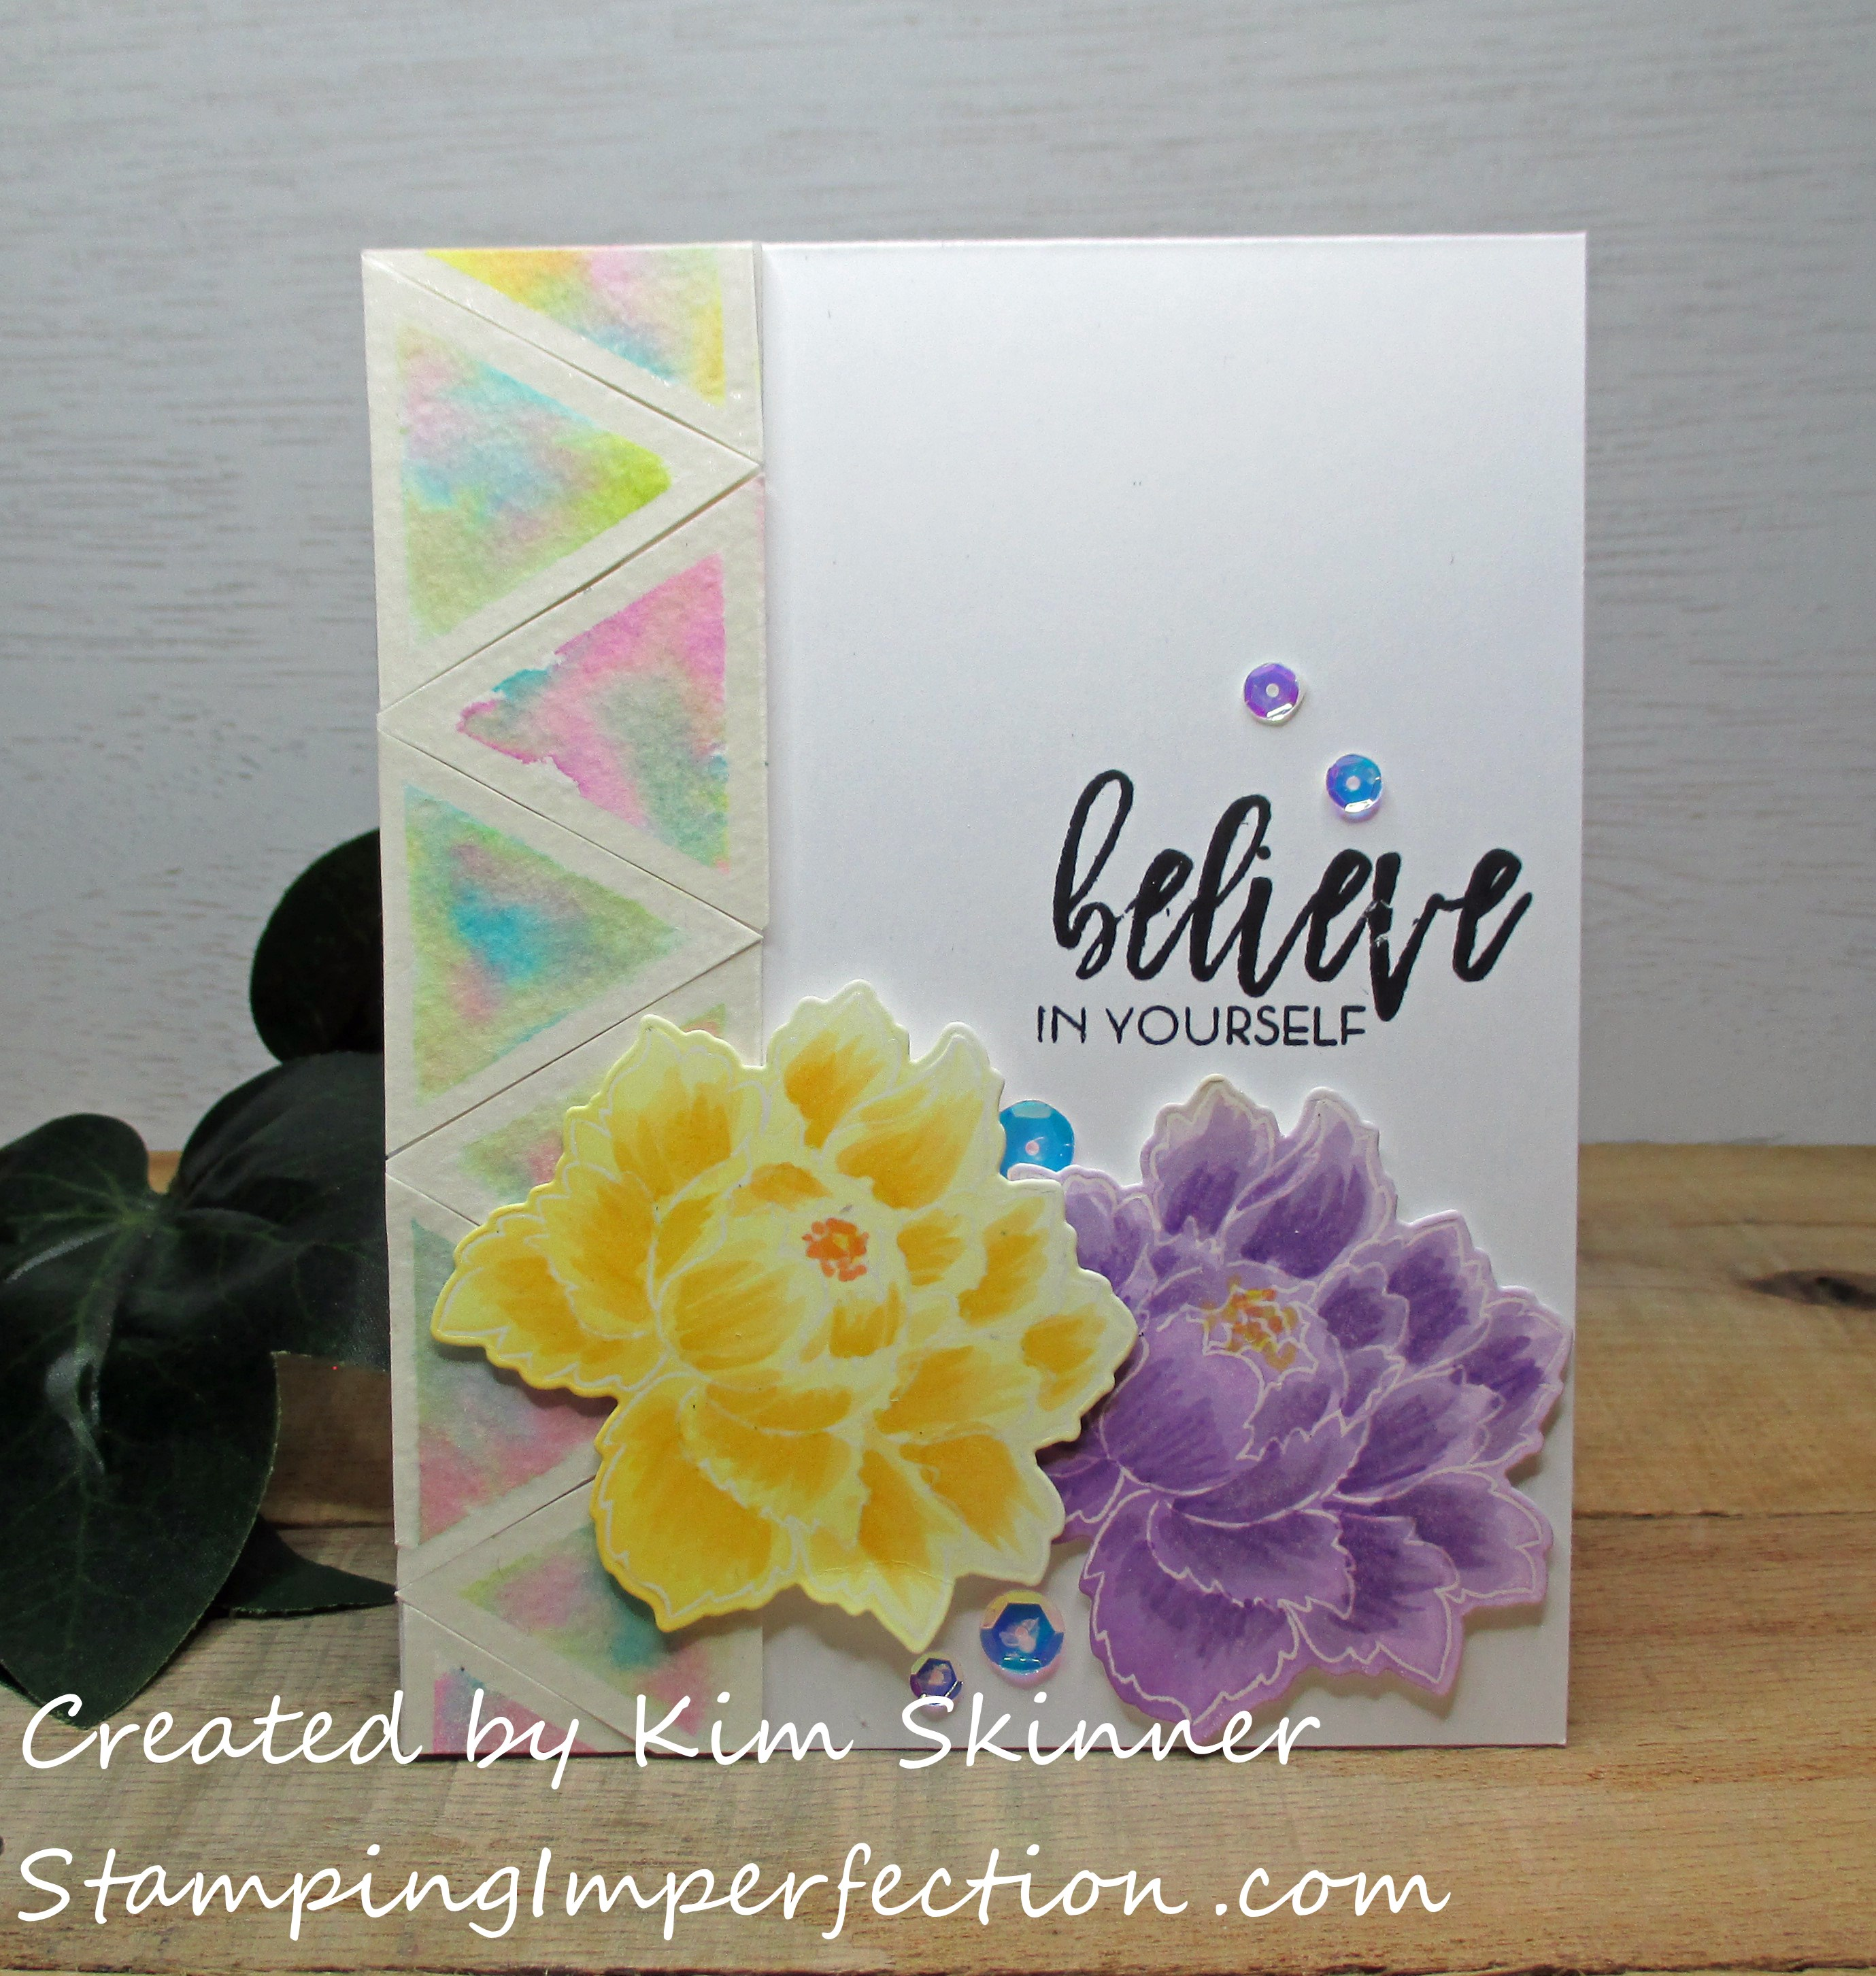 Stamping Imperfection Clean, Simple and Colorful Cards